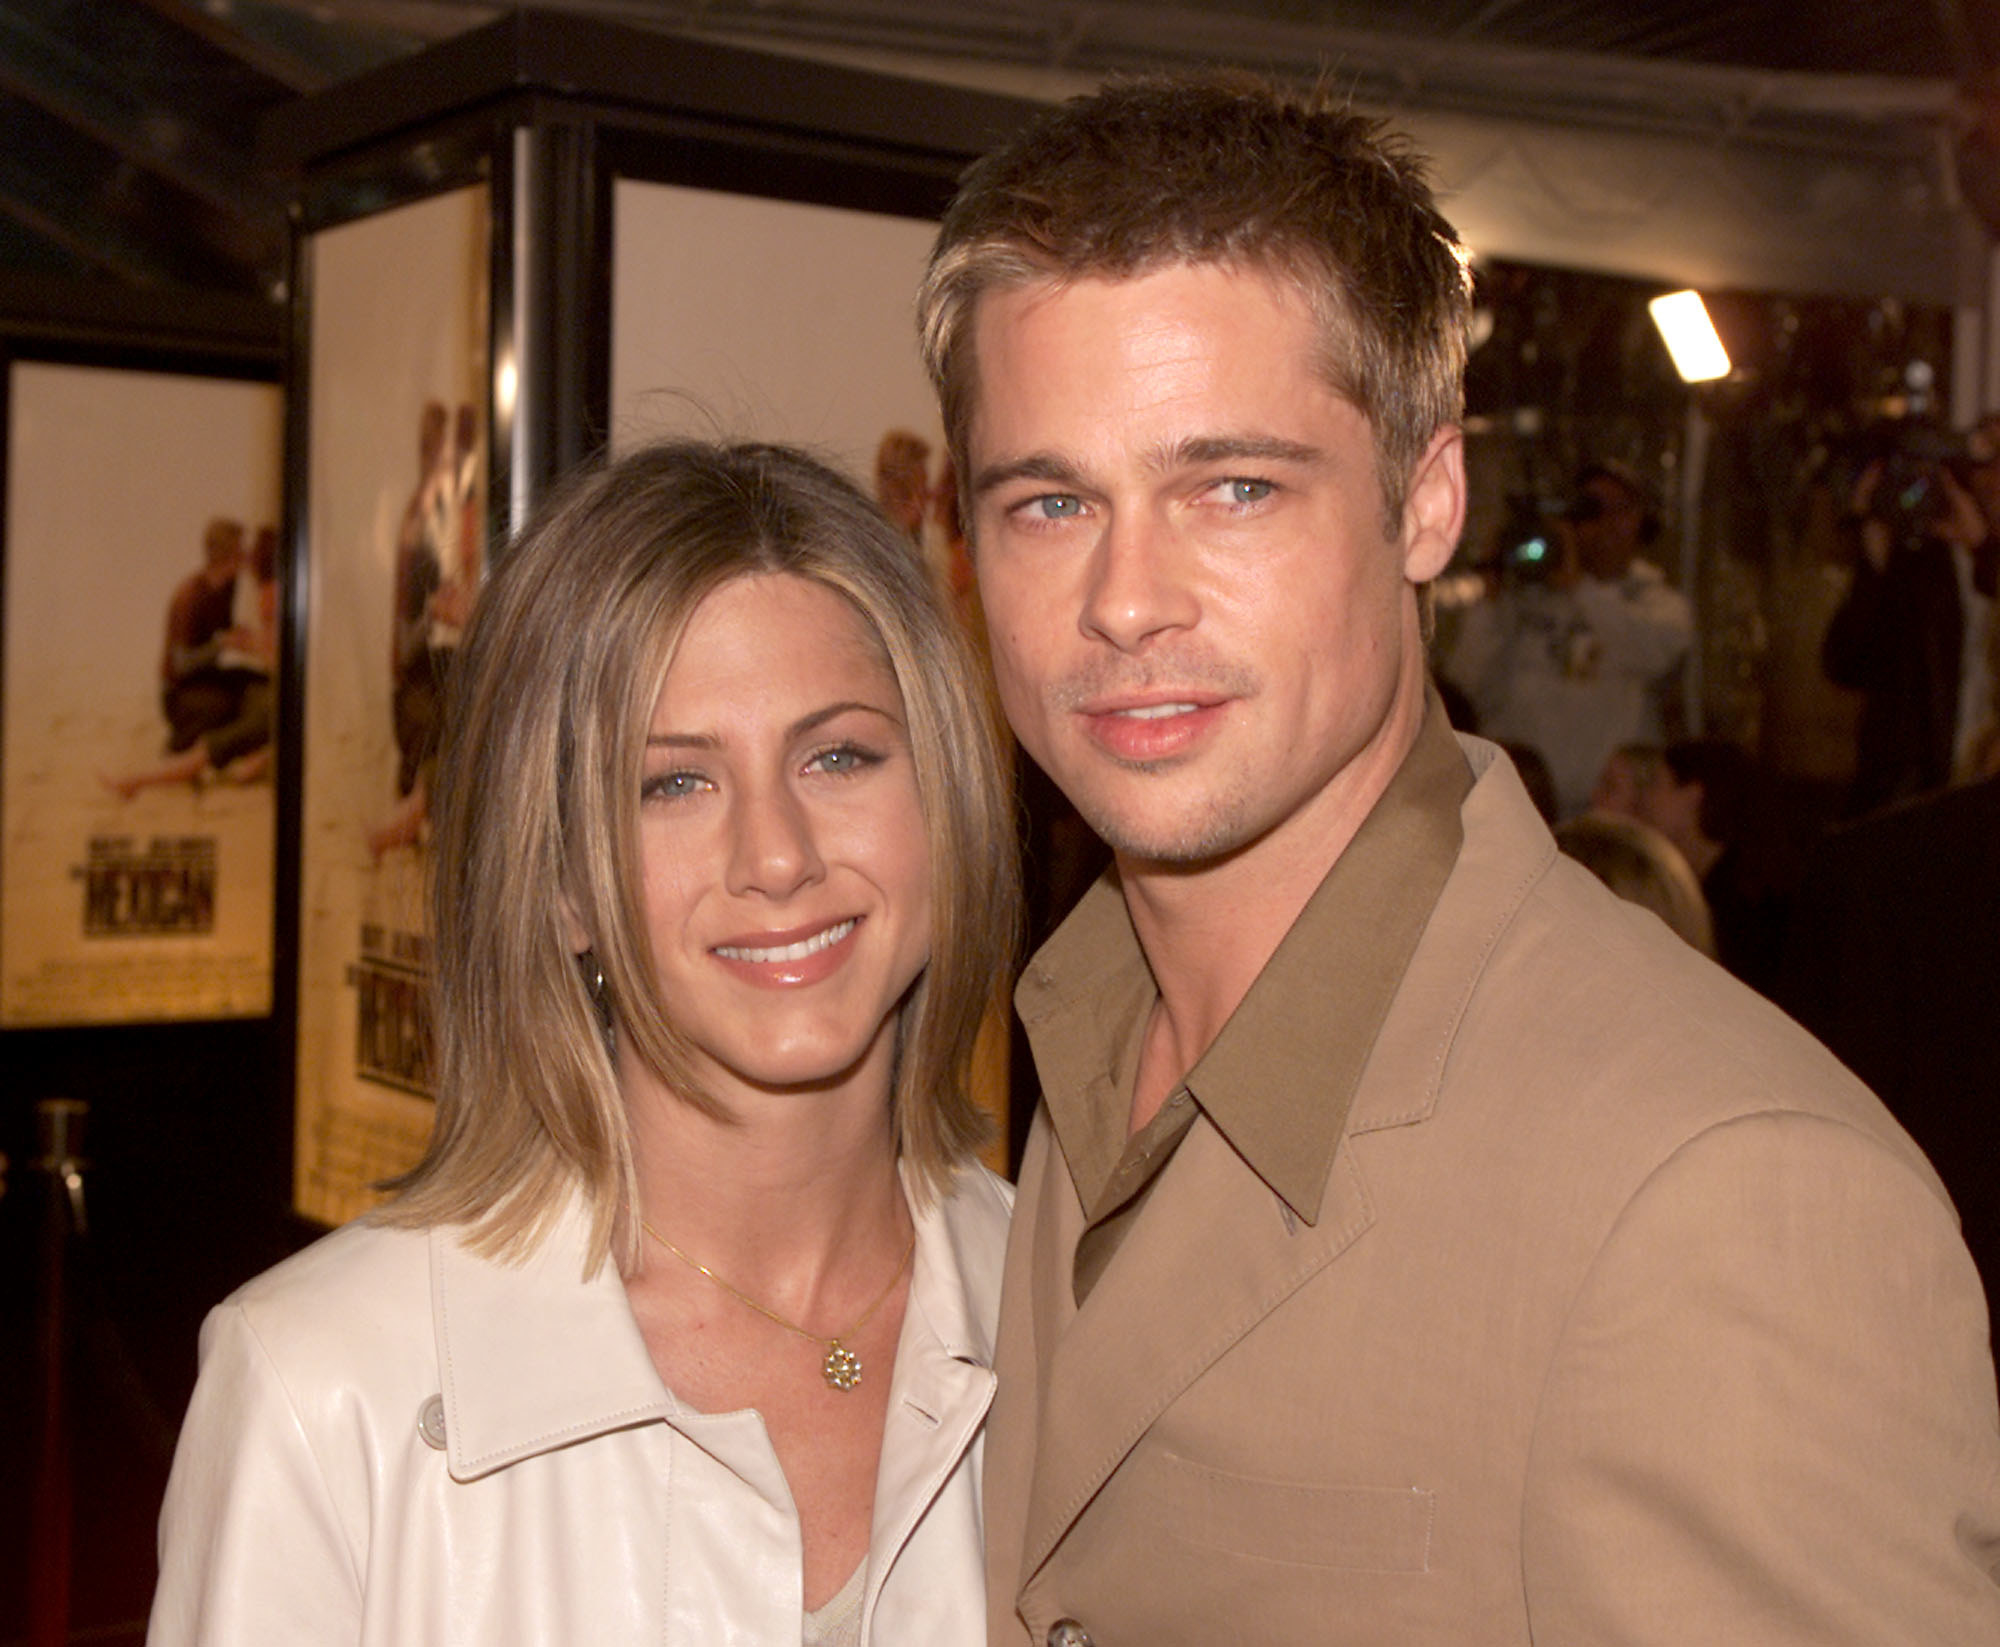 Jennifer Aniston and Brad Pitt pose together in 2001